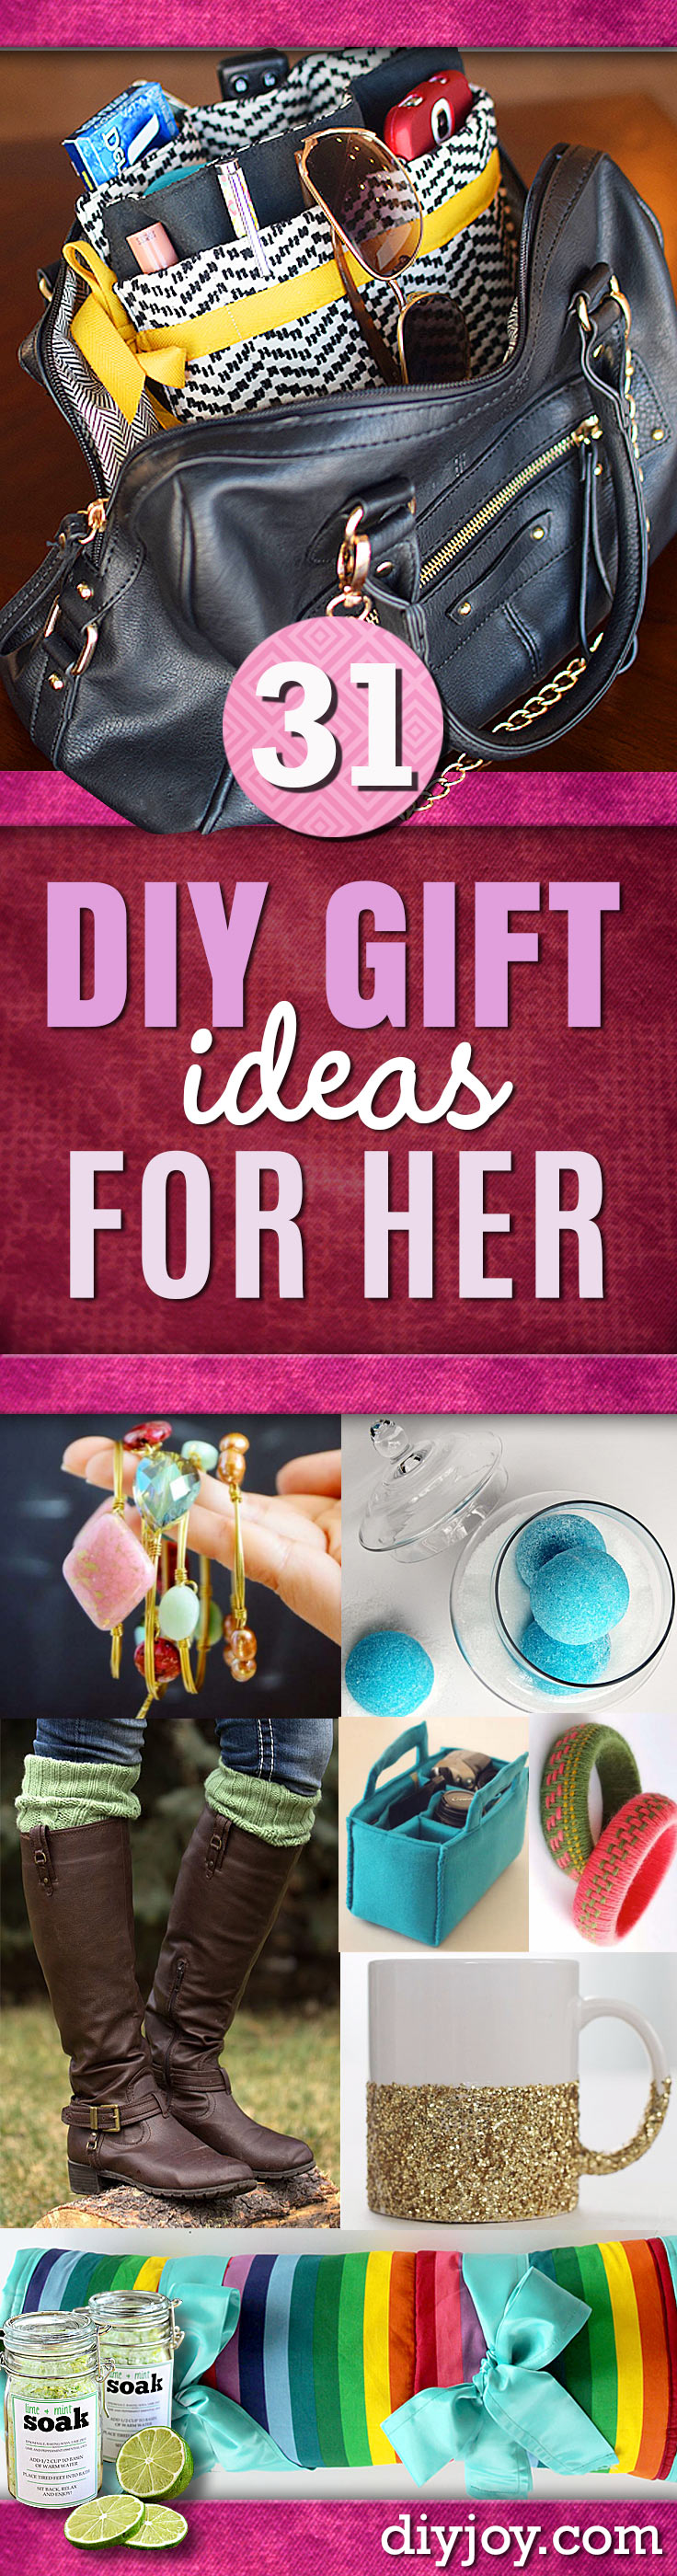 DIY Gifts for Her - Perfect Homemade Gift Ideas for Girlfriend Mom, Sister, Aunt, Wife, BFF. Easy Inexpensive and Cool Crafts You Can Make To Give For Christmas, Birthday Gift, Anniversary